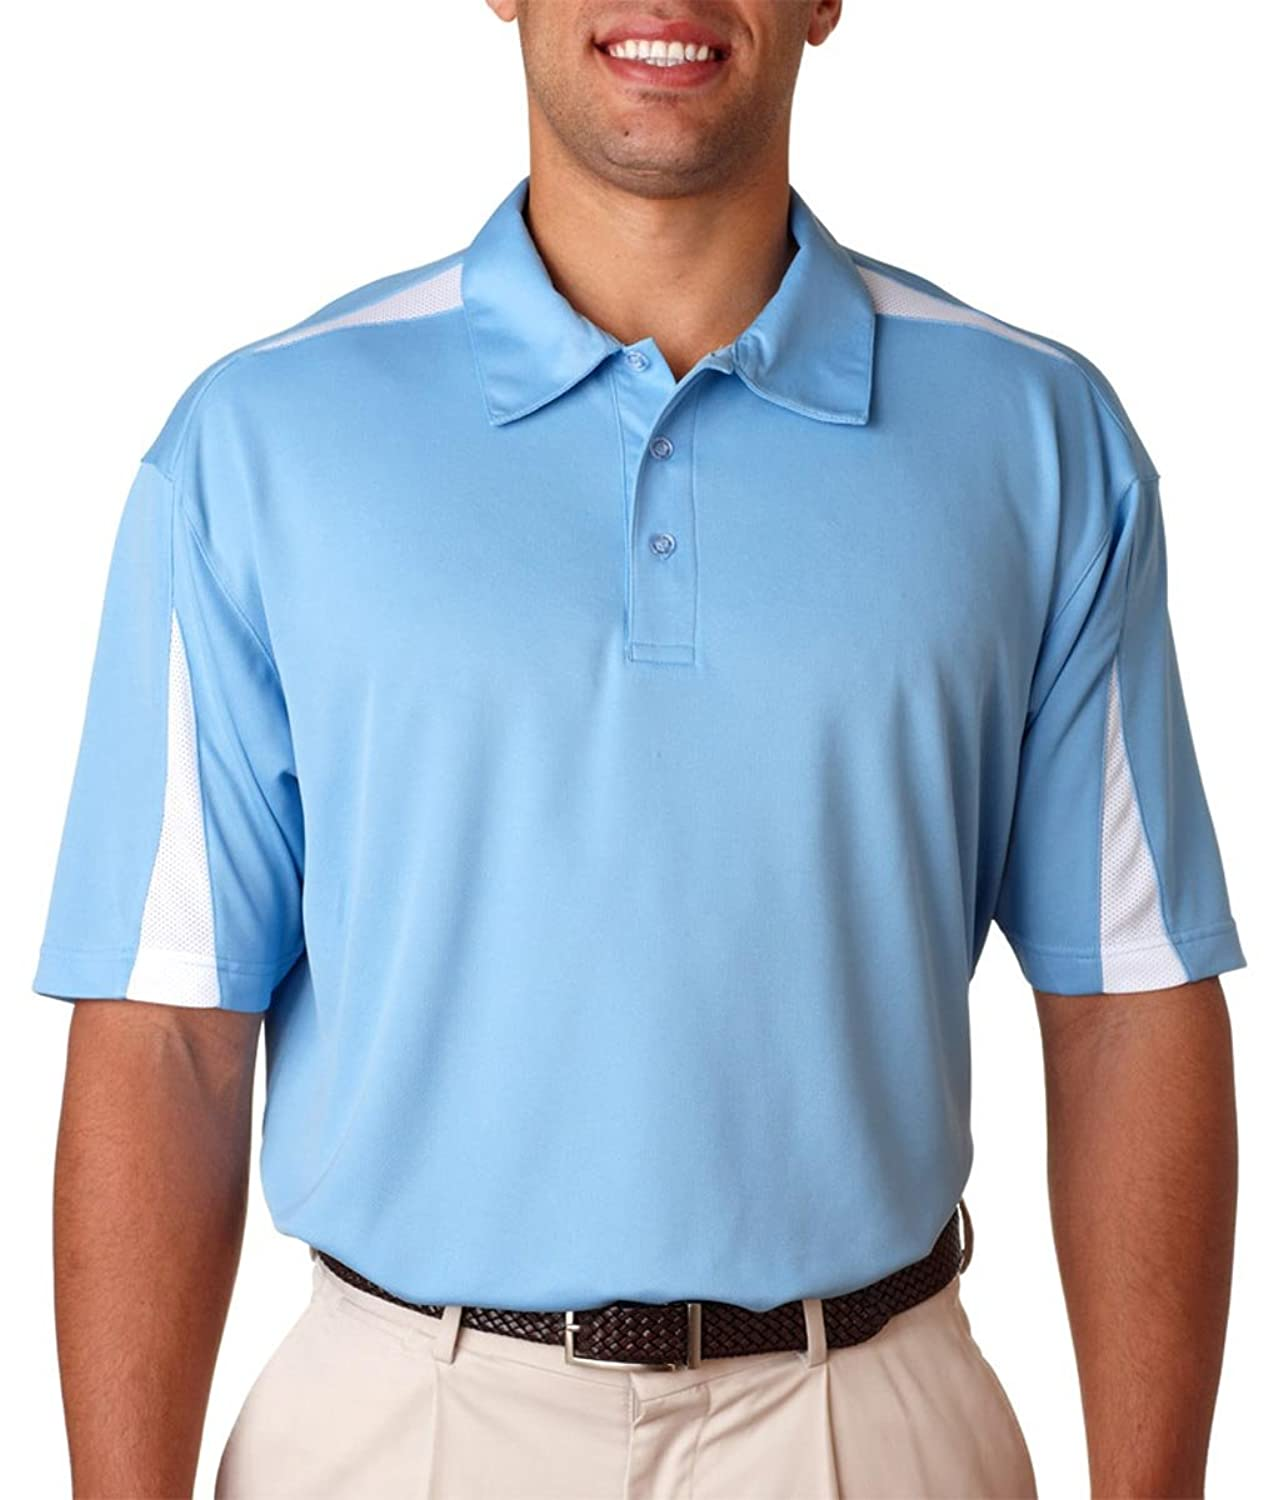 UltraClub Adult Cool - Dry Sport Polo - Columbia Blue/ White - L